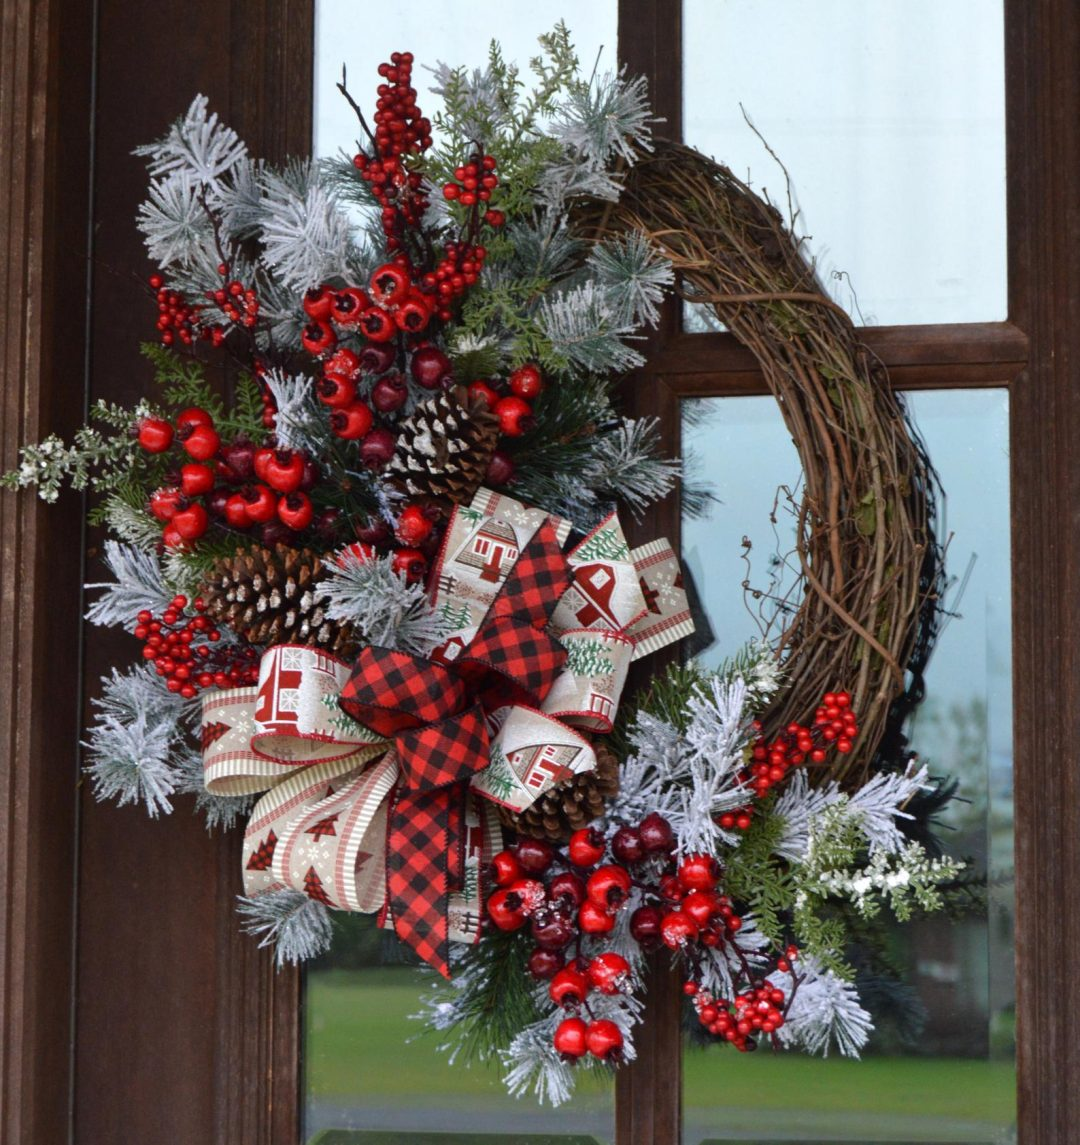 Red berries and ribbons farmhouse Christmas wreath with grapevine